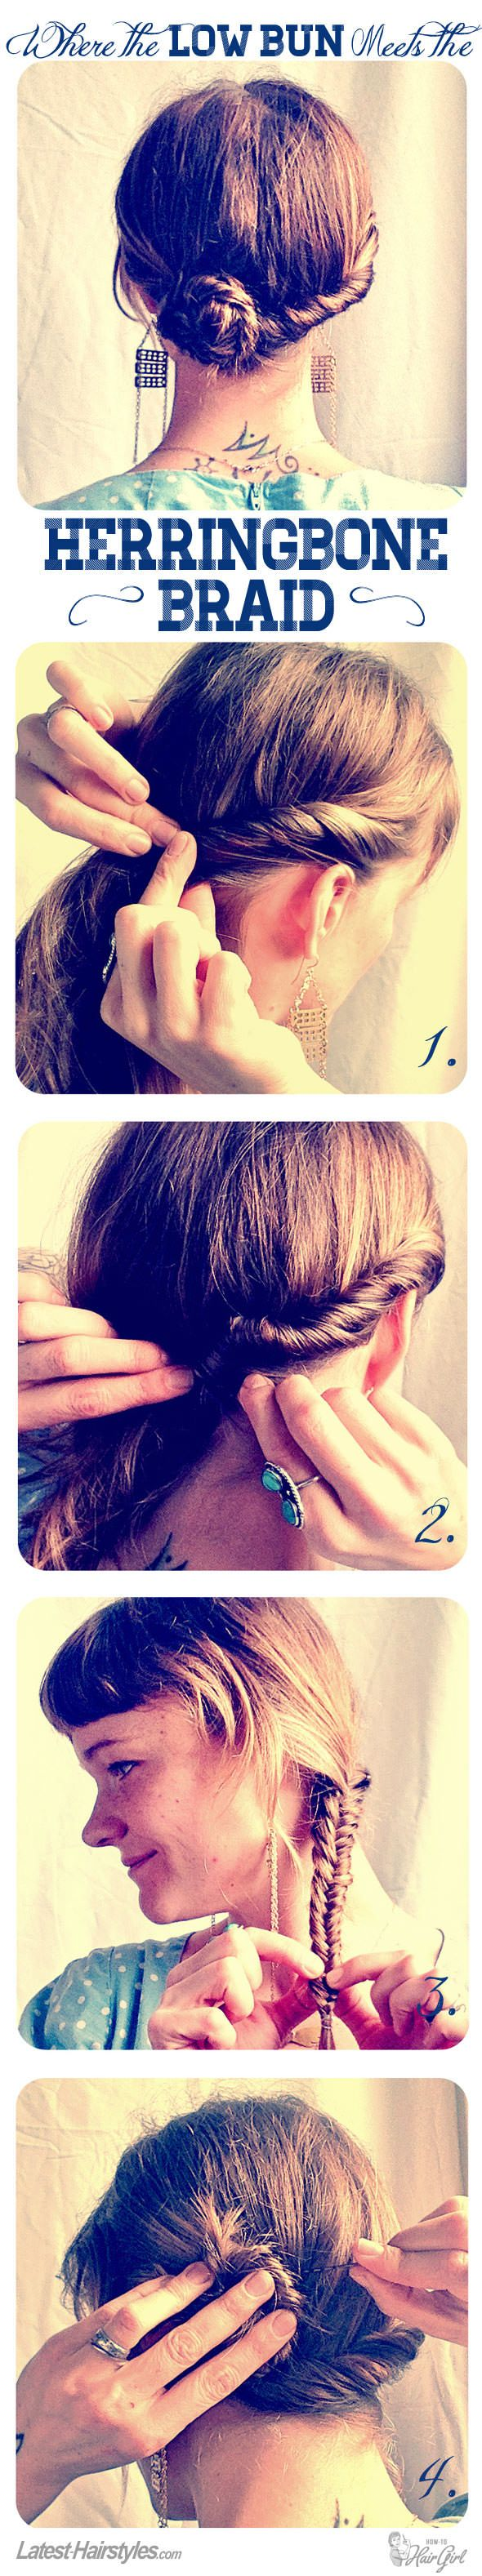 Where the low bun meets the herringbone braid...LOVE! Full tutorial with tips here:  http://www.latest-hairstyles.com/tutorials/low-bun-herringbone-braid.html